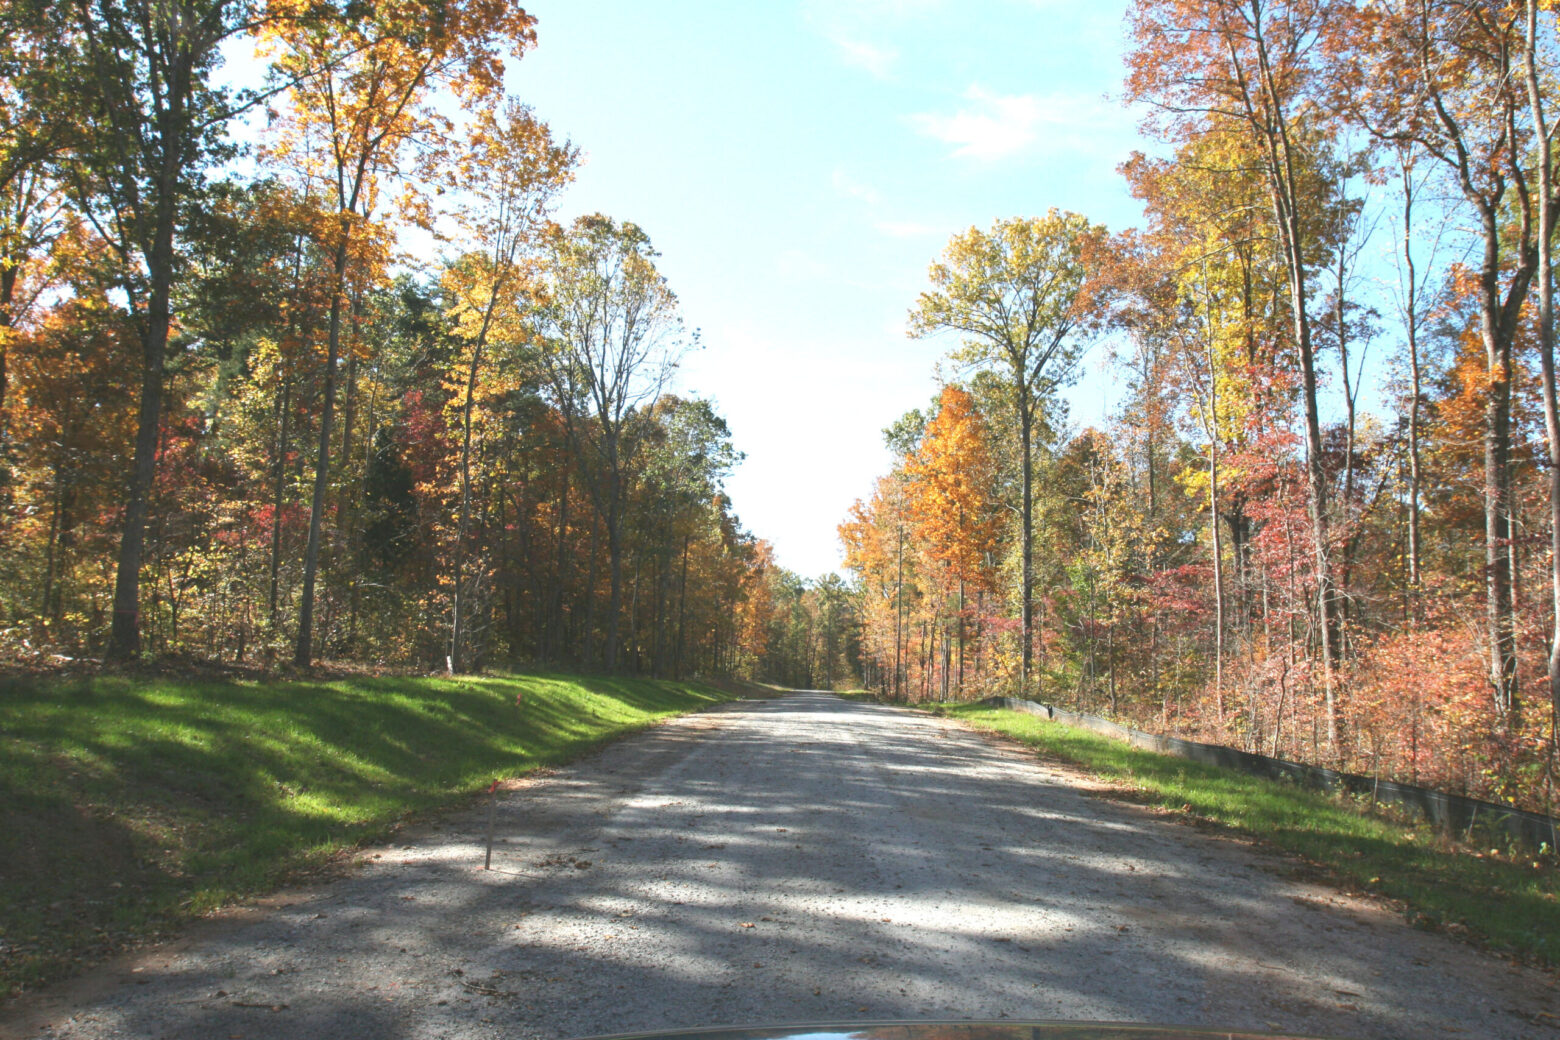 Land for Sale in Pamplin, VA